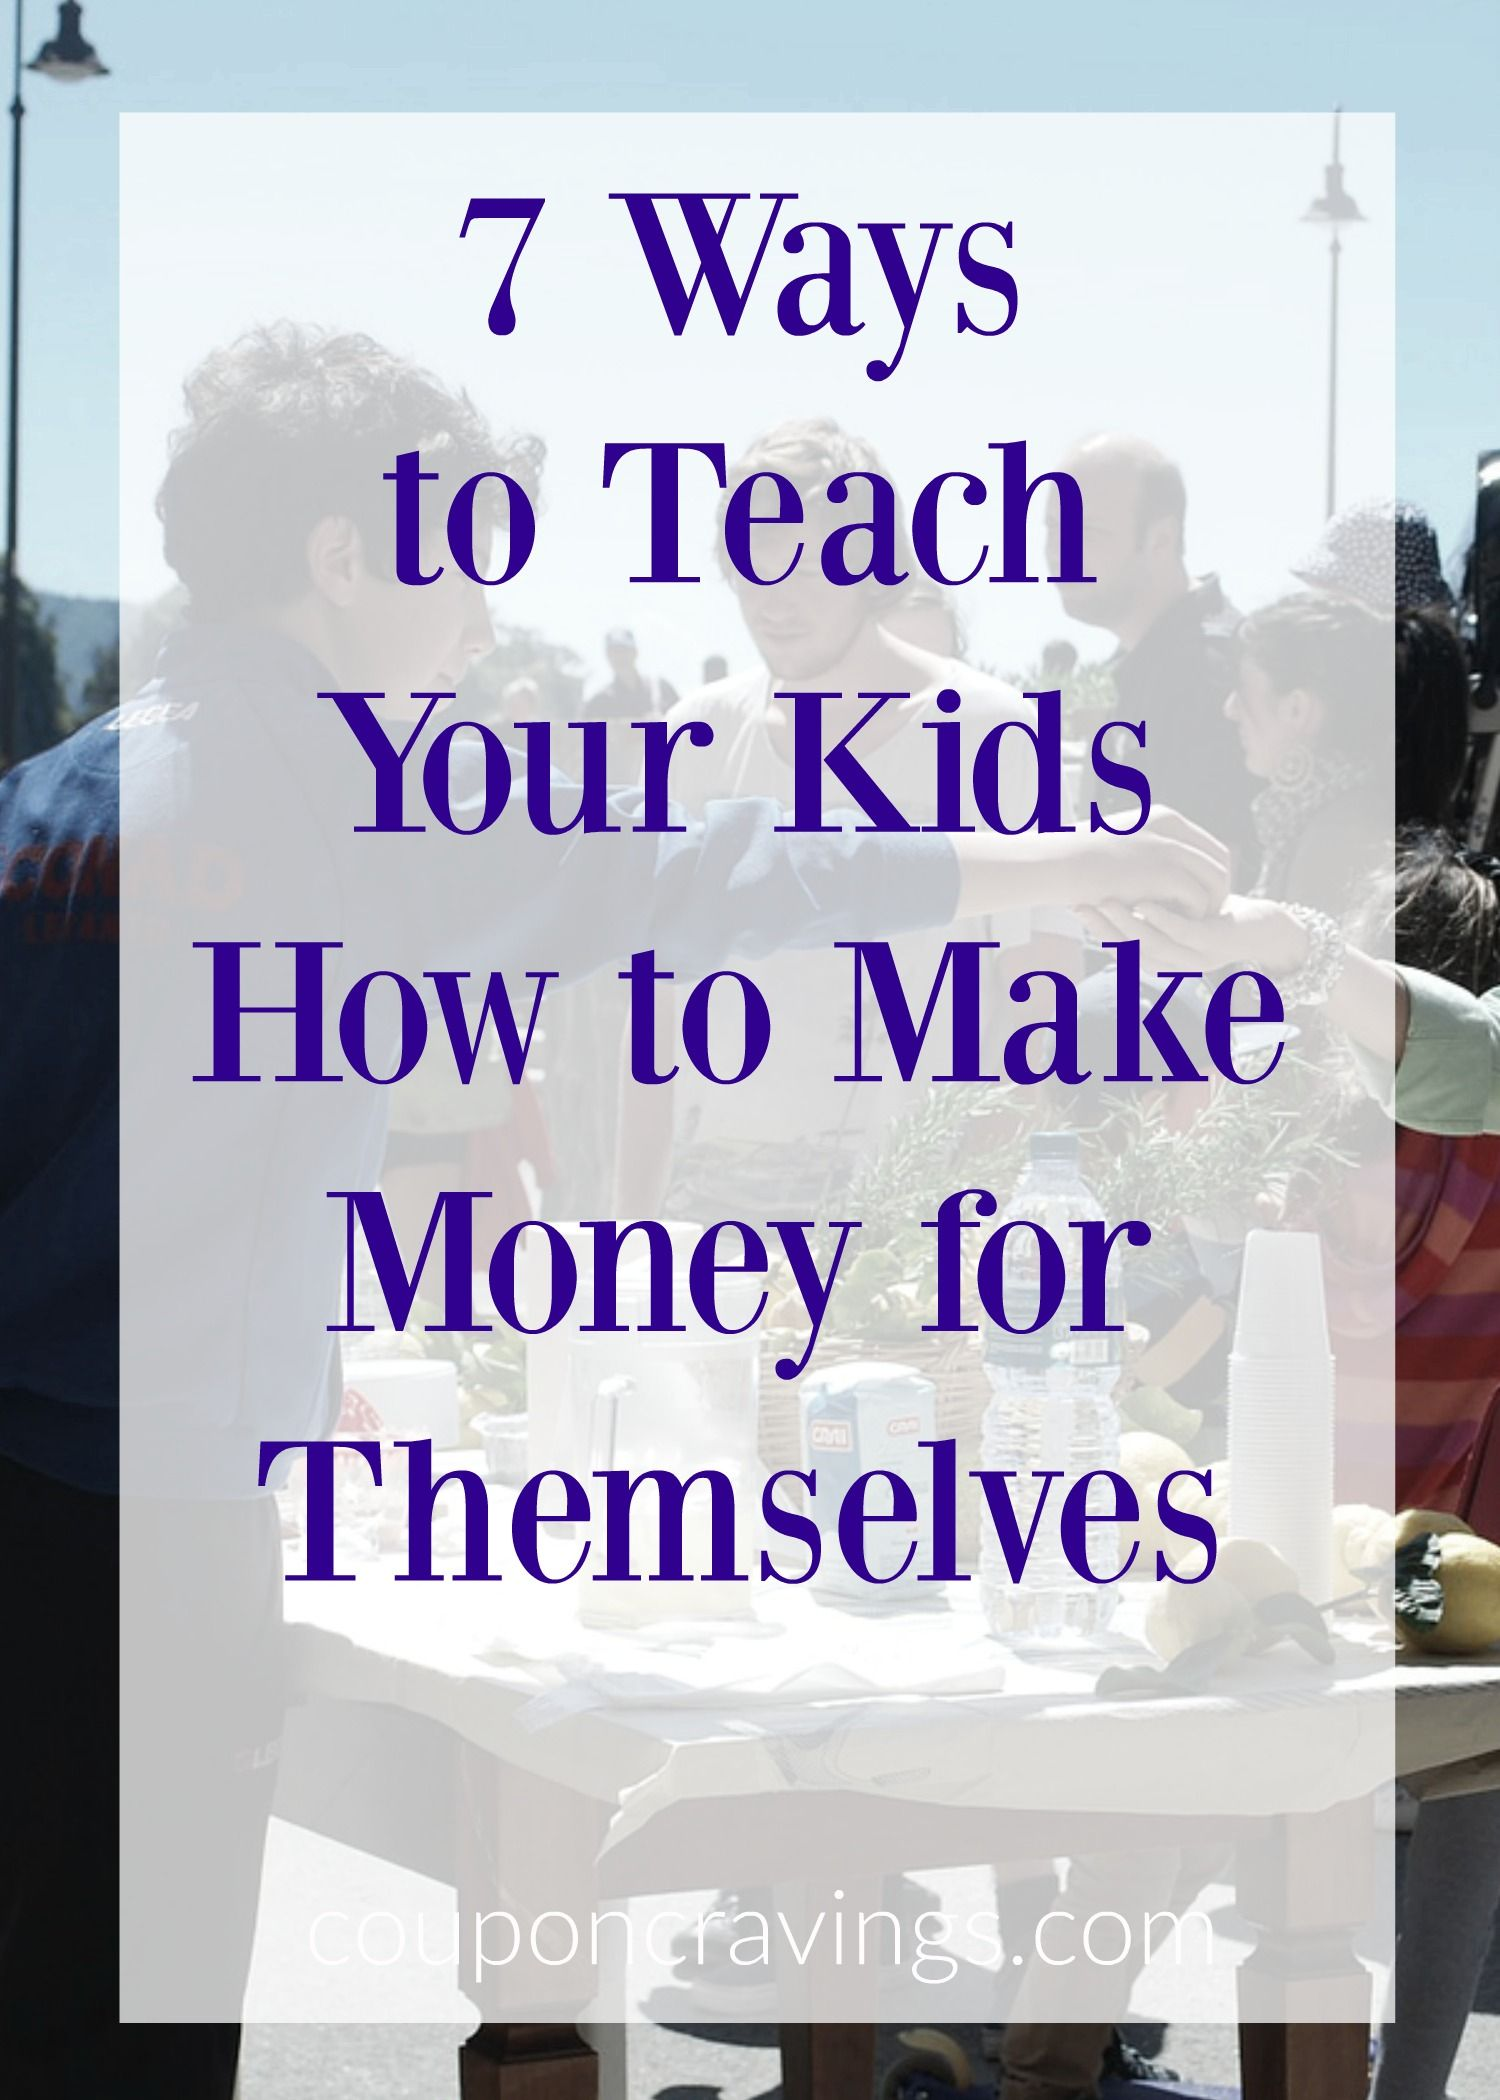 7 Ways to Teach Your Kids How to Make Money for Themselves ...